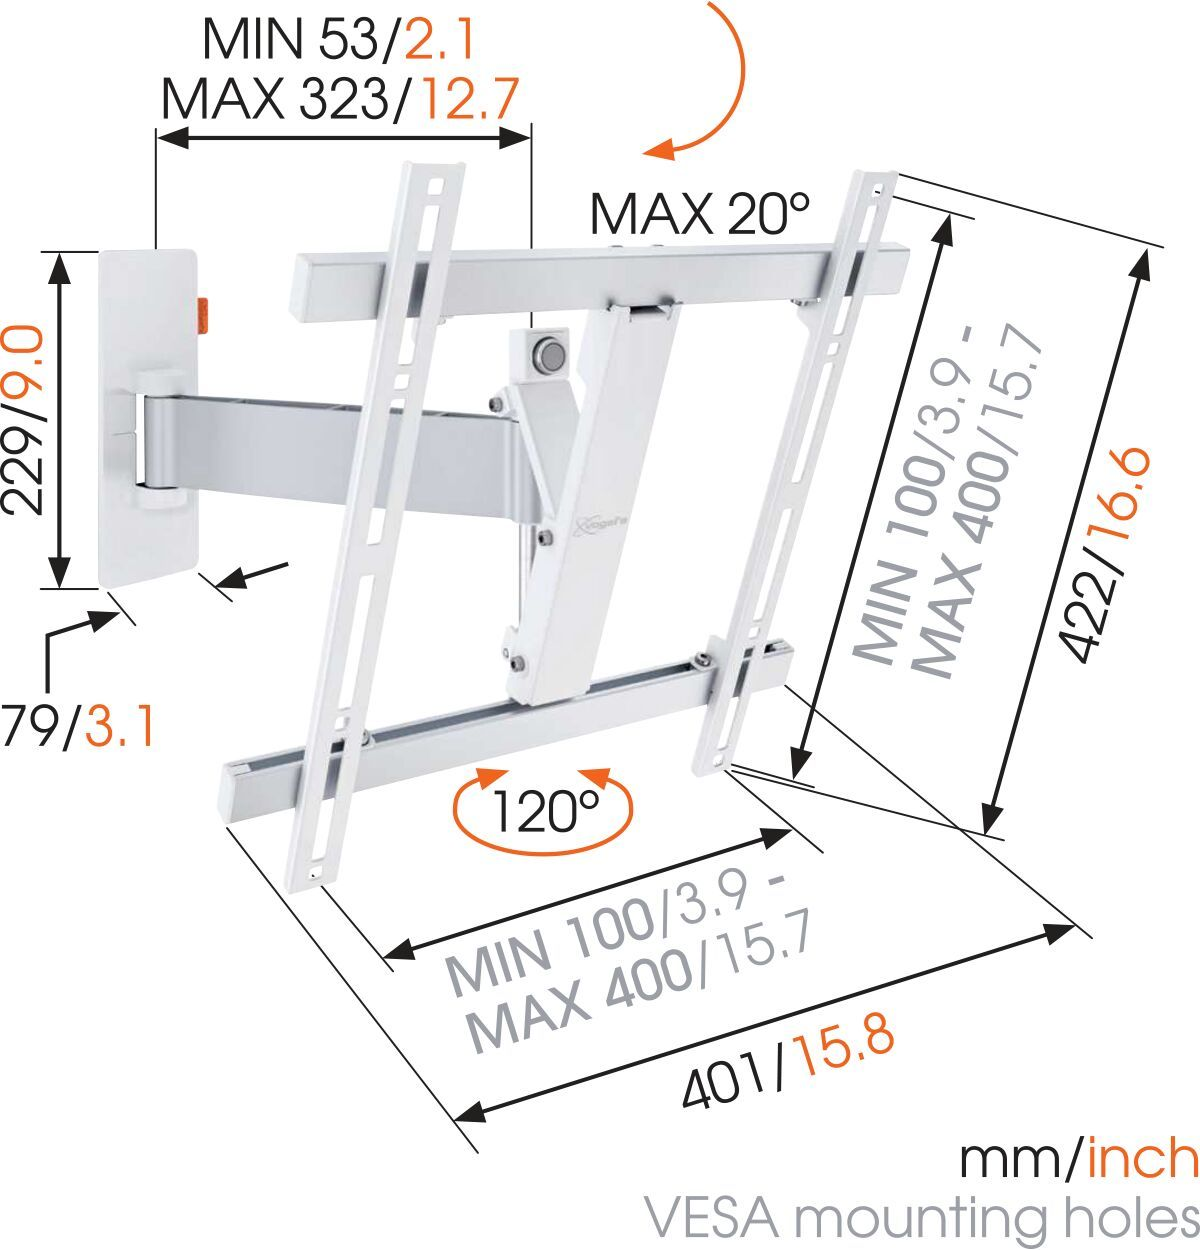 Vogel's WALL 2225 Full-Motion TV Wall Mount (white) - Suitable for 32 up to 55 inch TVs - Motion (up to 120°) - Tilt up to 20° - Dimensions